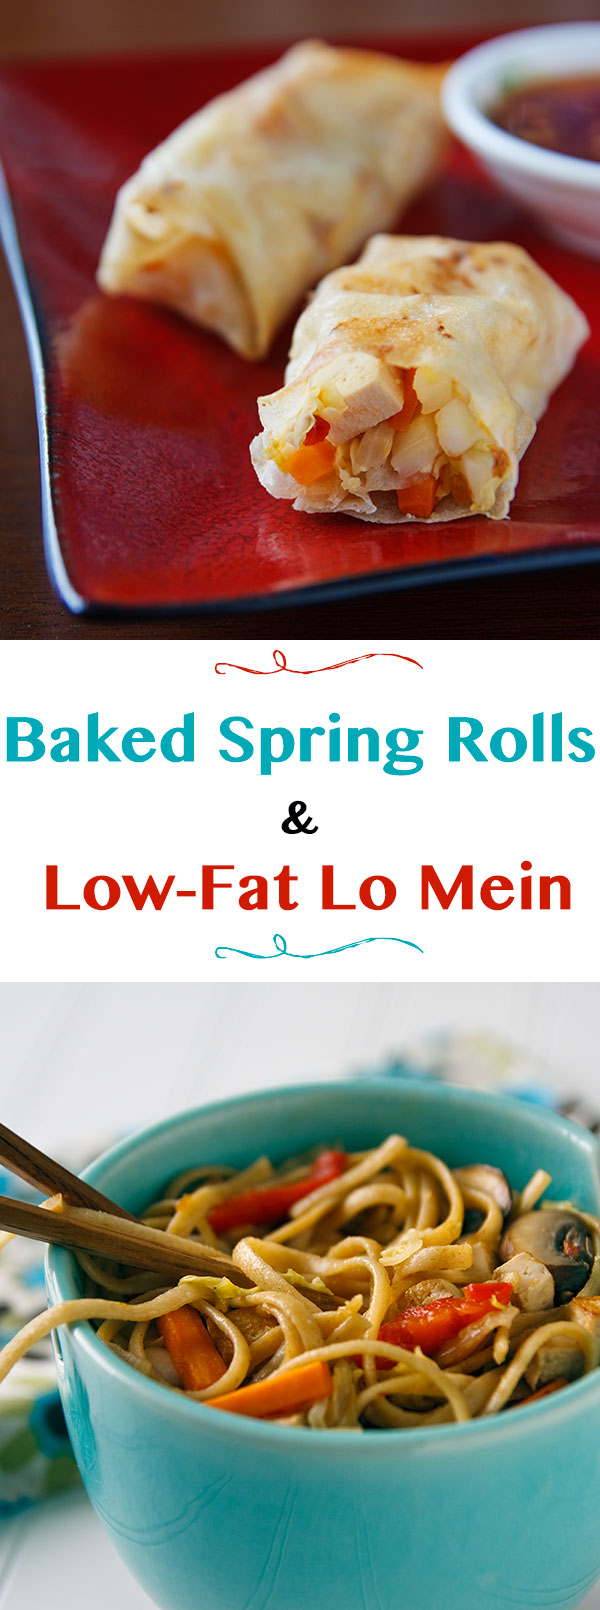 Make these easy, vegan, low-fat baked spring rolls in your oven. While they are cooking, most of the same ingredients can be used to make a low-fat lo mein.